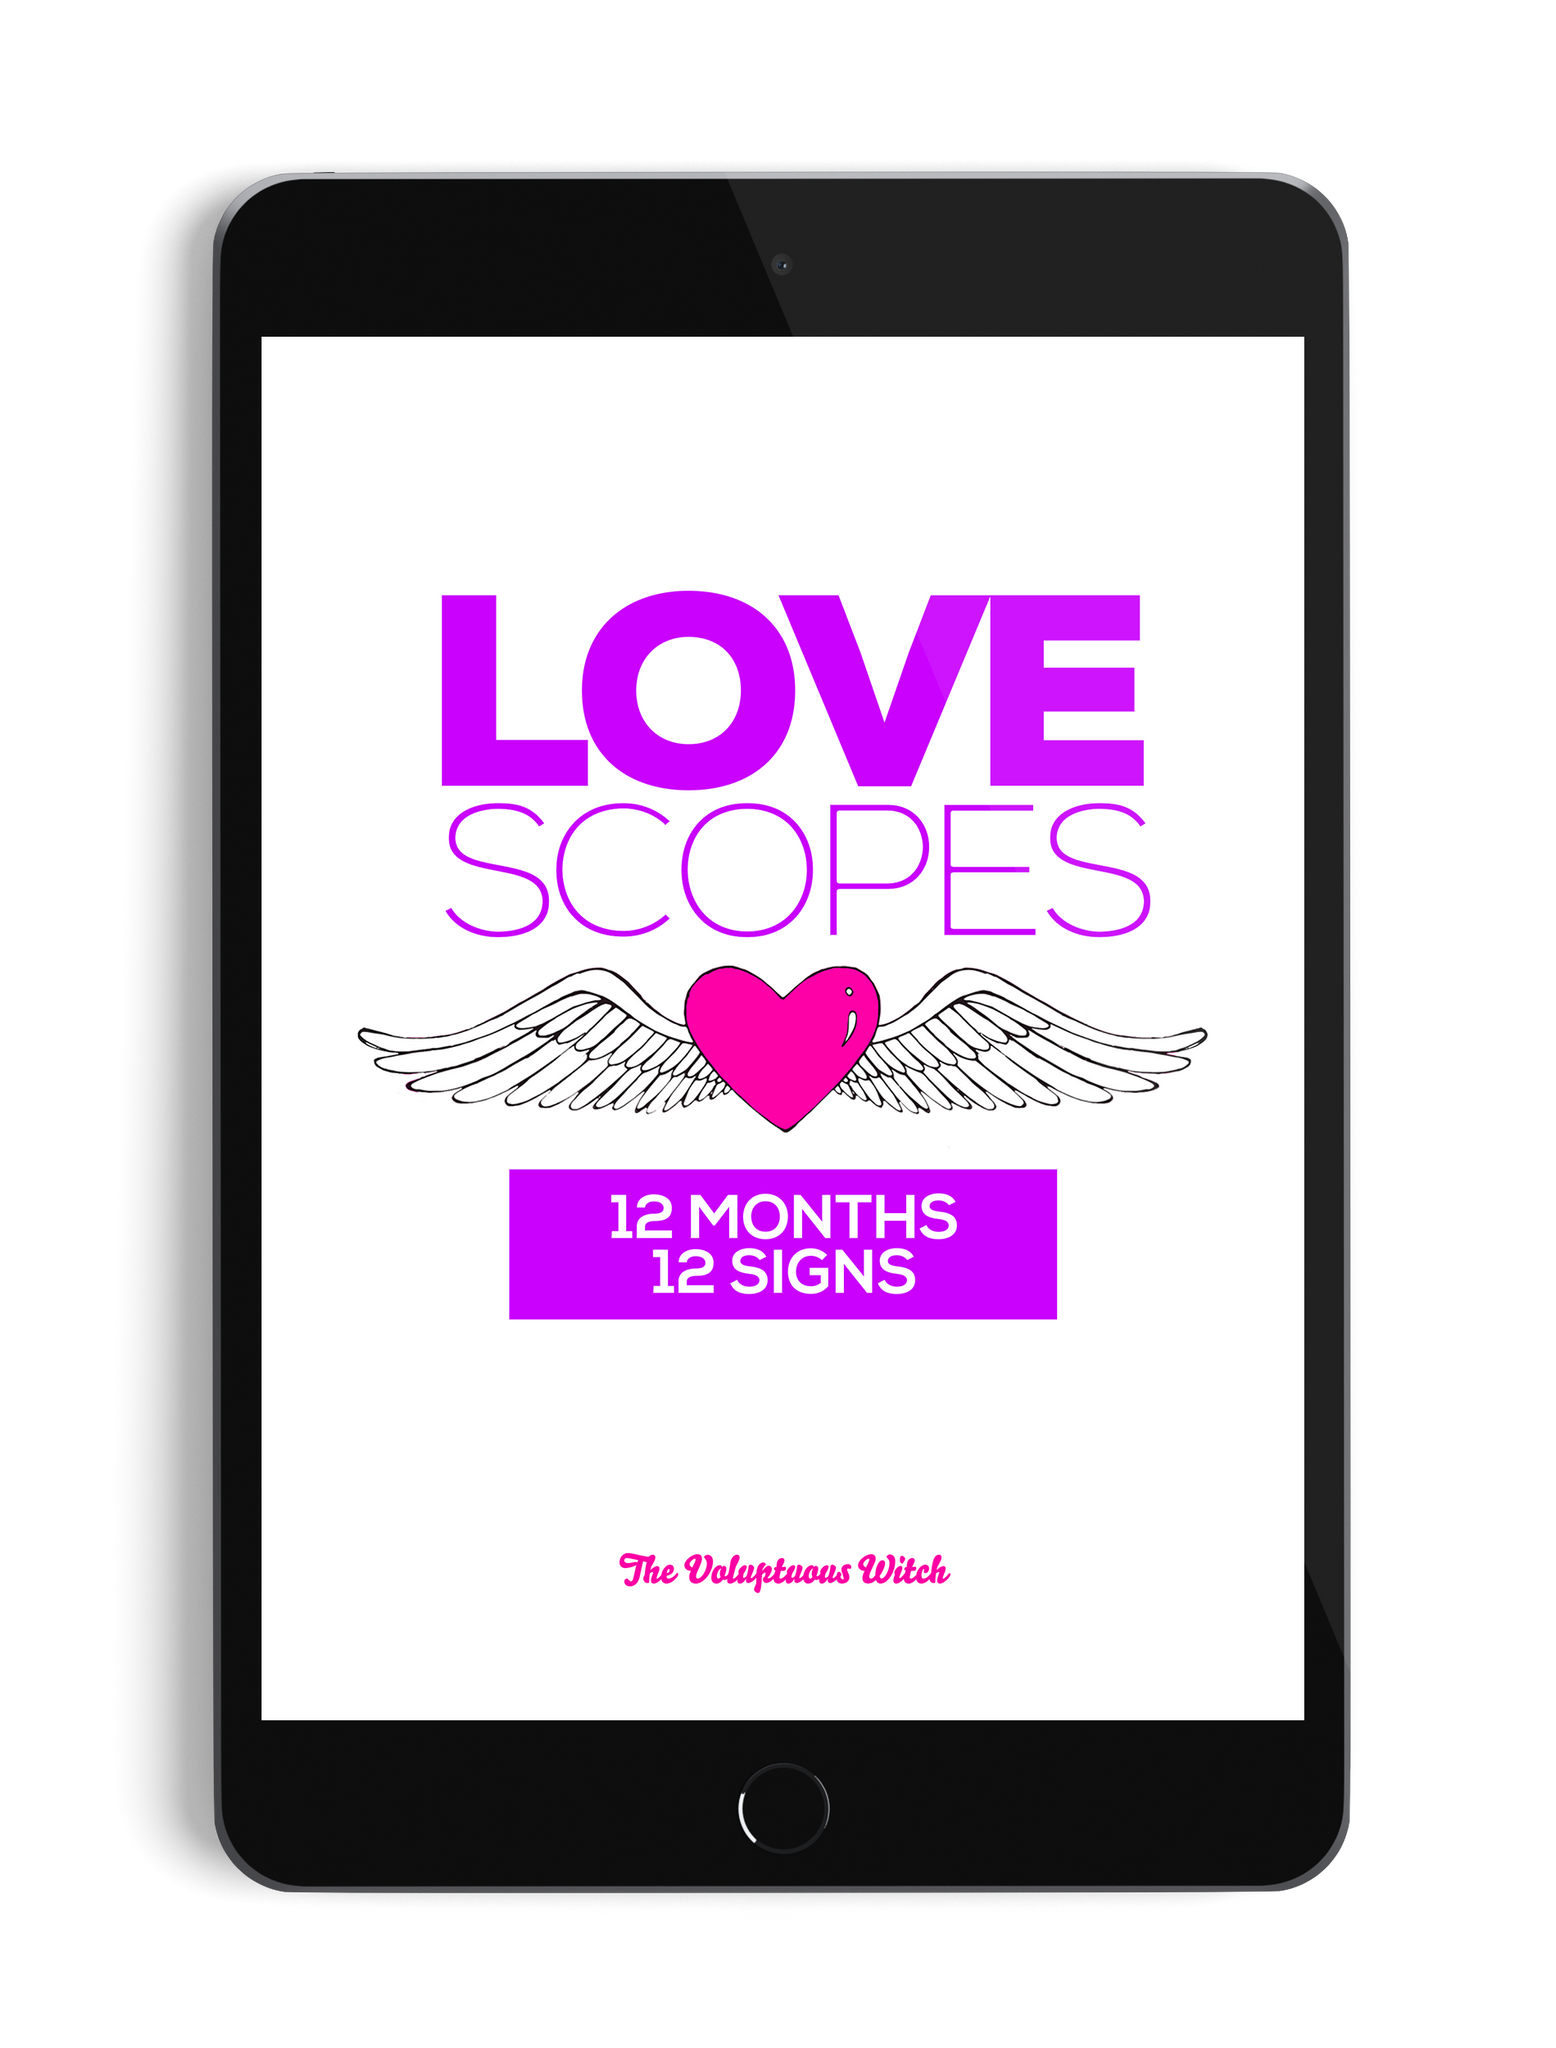 LoveScopes: 12 Months for 12 Signs (Preorder)